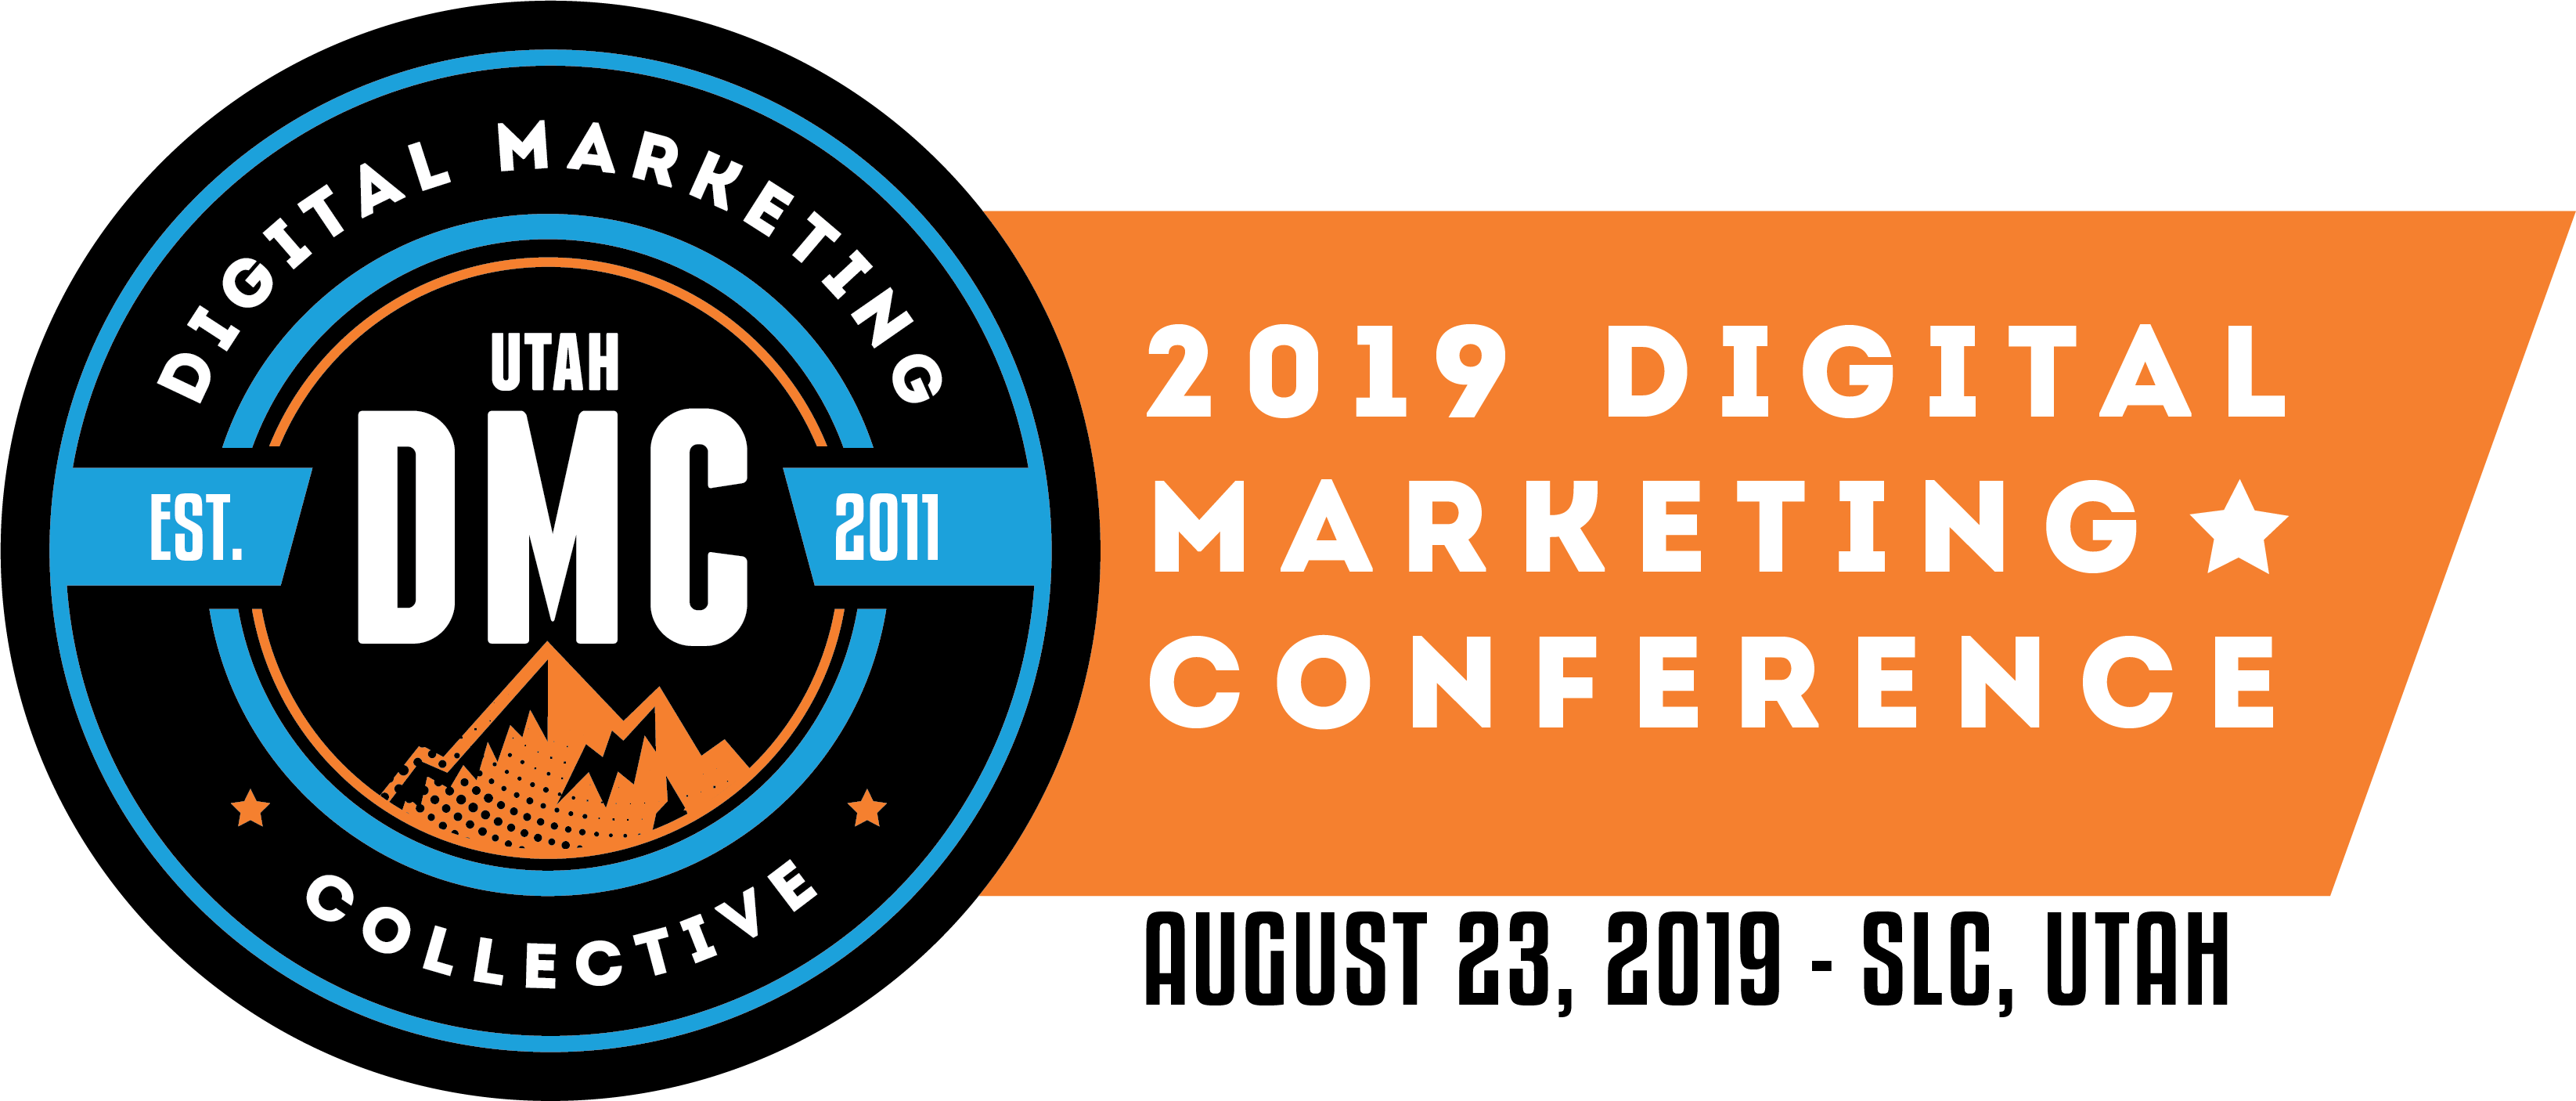 Utah DMC Conference 2019 Logo with Date